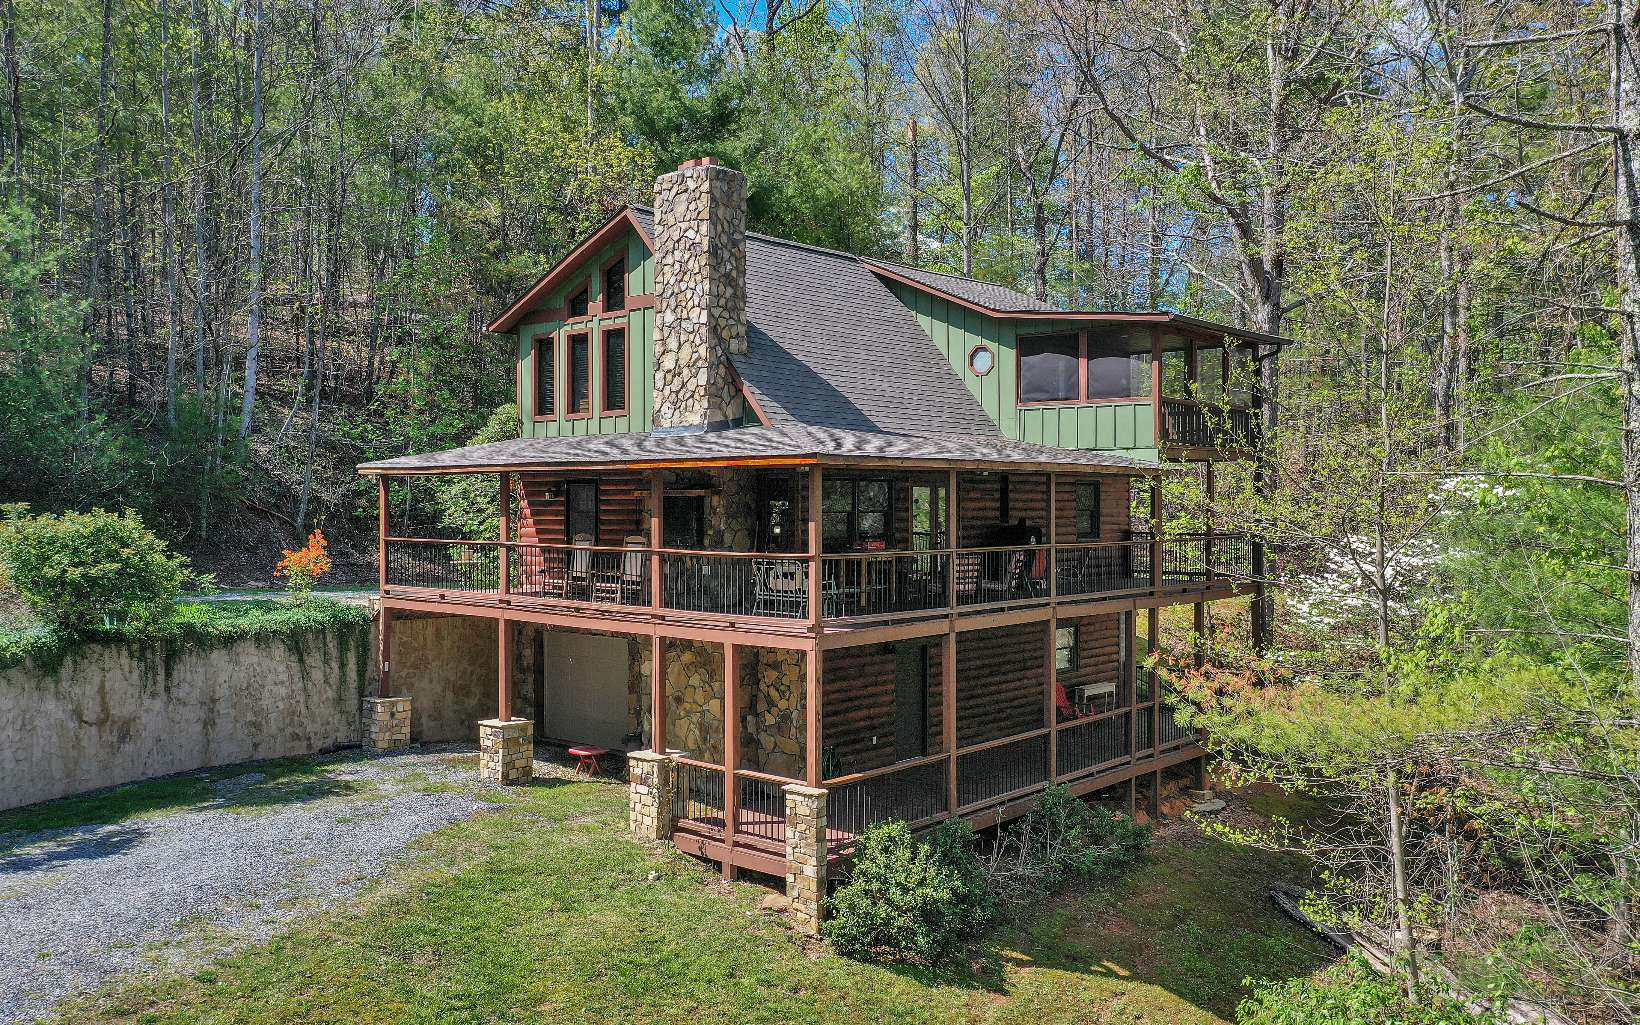 PRICE IMPROVEMENT!!! Aska Adventure Area with DEEDED Toccoa River Access. 3 Bedroom / 3 Bath + Spacious Large Open Loft for Additional Sleeping, large fixed glass windows to give you plenty of sunlight making this cabin a true gem. Oversized covered porches, Screen Porch off Master Bedroom, Quarts Countertops in Kitchen, Floor to Ceiling Stone Covered Wood Burning Fireplace. Chimney with Triple Flue venting system for Fireplace, Outside Grill (on the covered porch) & Wood Stove in Basement. 2 driveways for your convenience & Suitable for all Vehicles from Aska Road, 1 Car Garage that could be turned into additional living space. ROOF is LESS THAN 1 YEAR OLD. Great Location for the Trout Fisherman with tubing, hiking & Boating for the Family. All within minutes, Awesome Rental Potential.